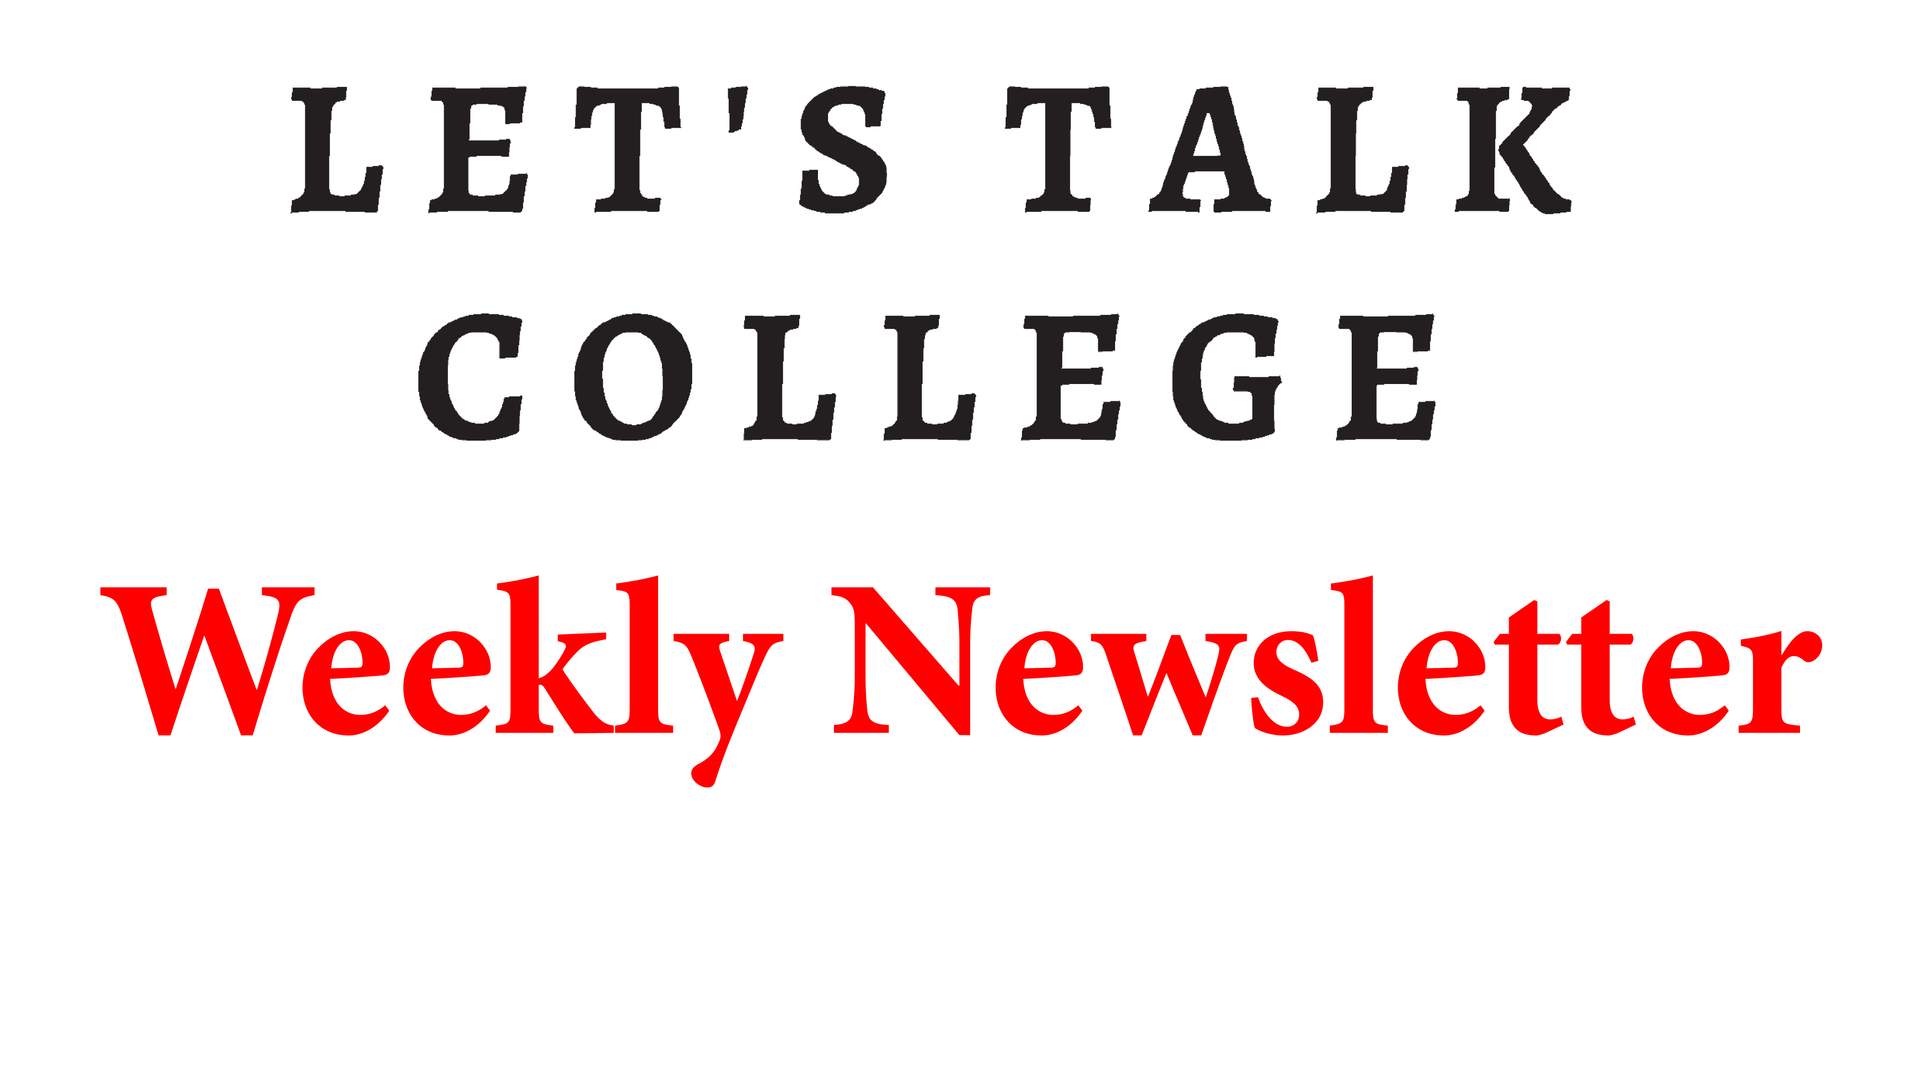 Let's Talk College Newsletter Button